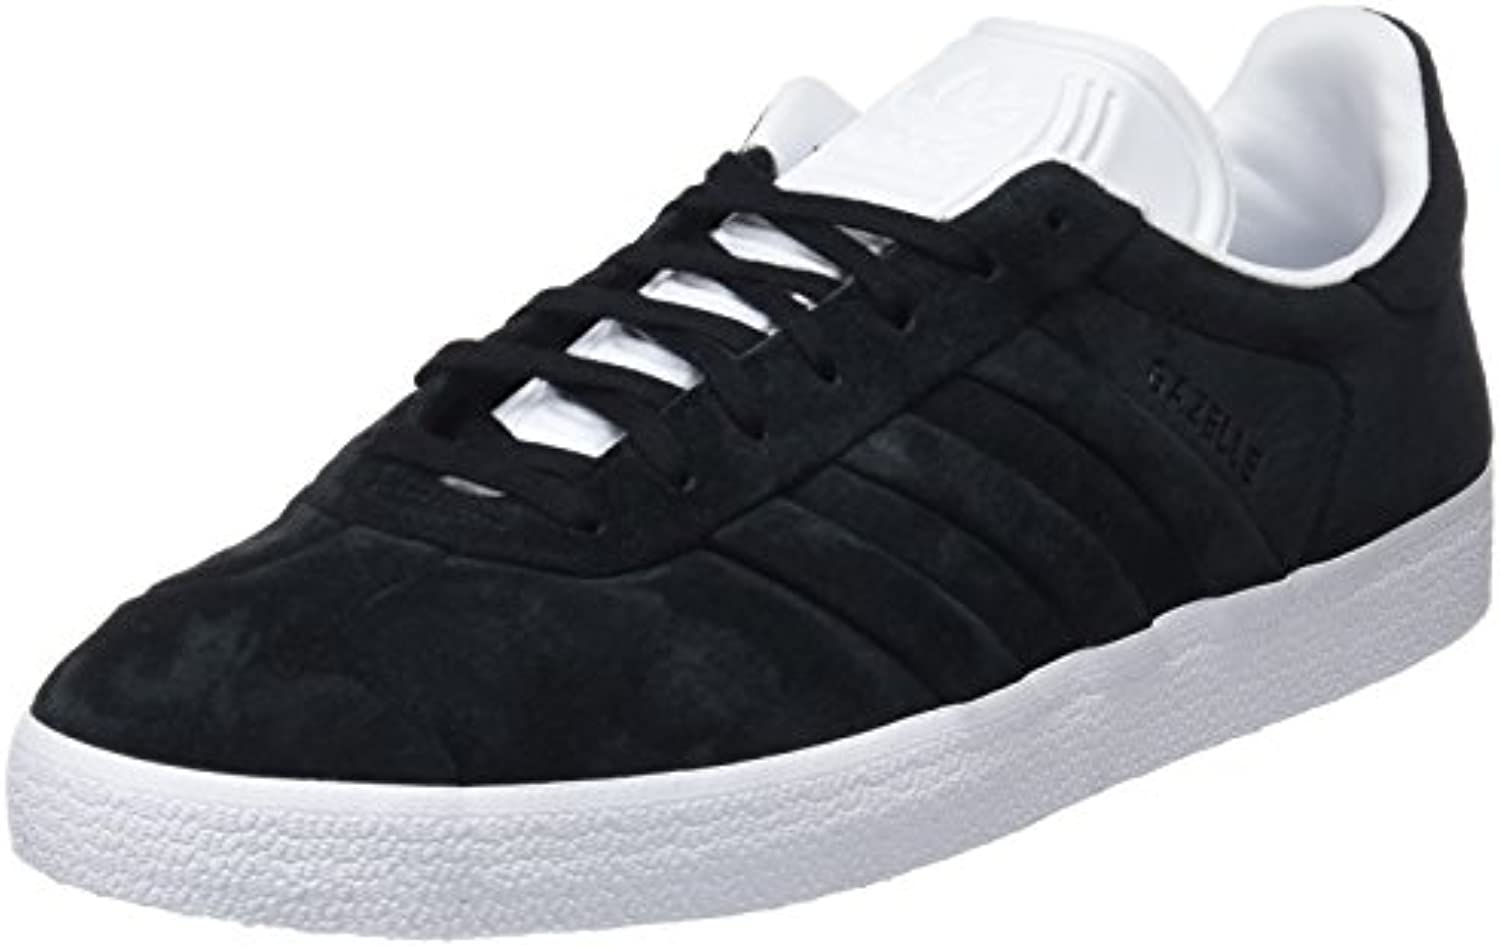 Adidas Gazelle Stitch and Turn, Zapatillas para Hombre -